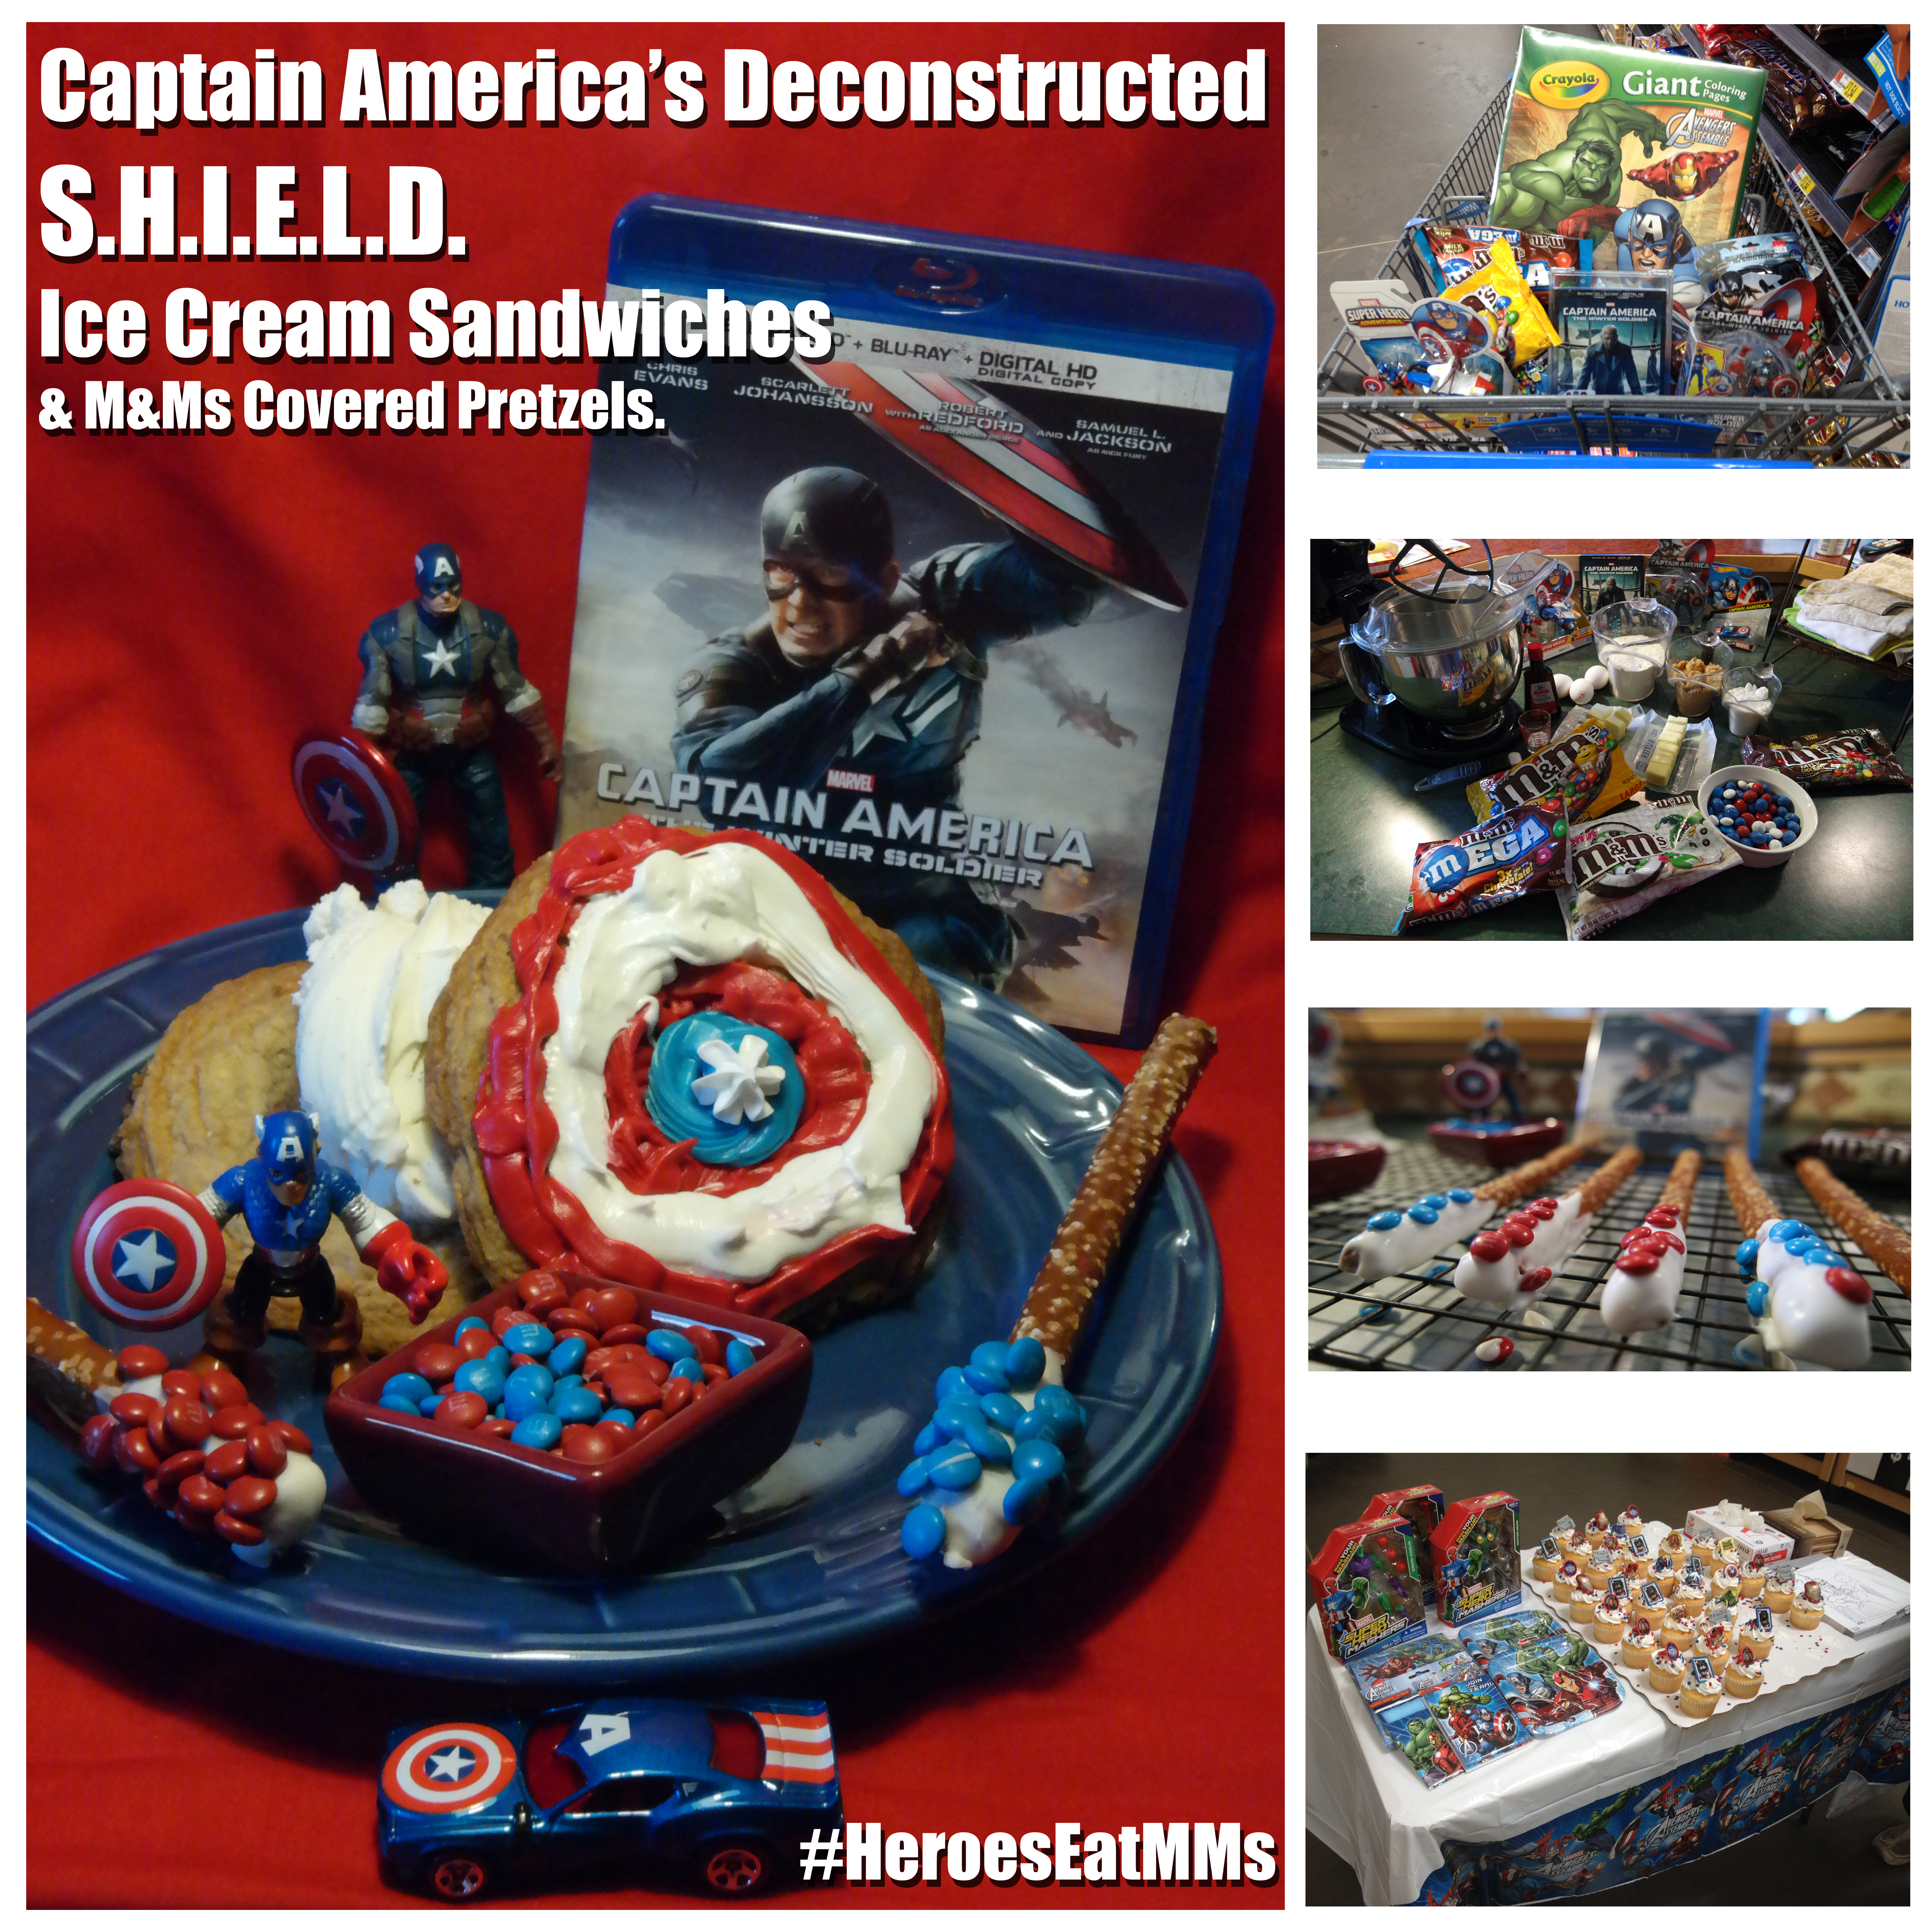 #HeroesEatMMs with Captain America's Deconstructed S.H.I.E.L.D. M&M's Cookie Ice Cream Sandwiches